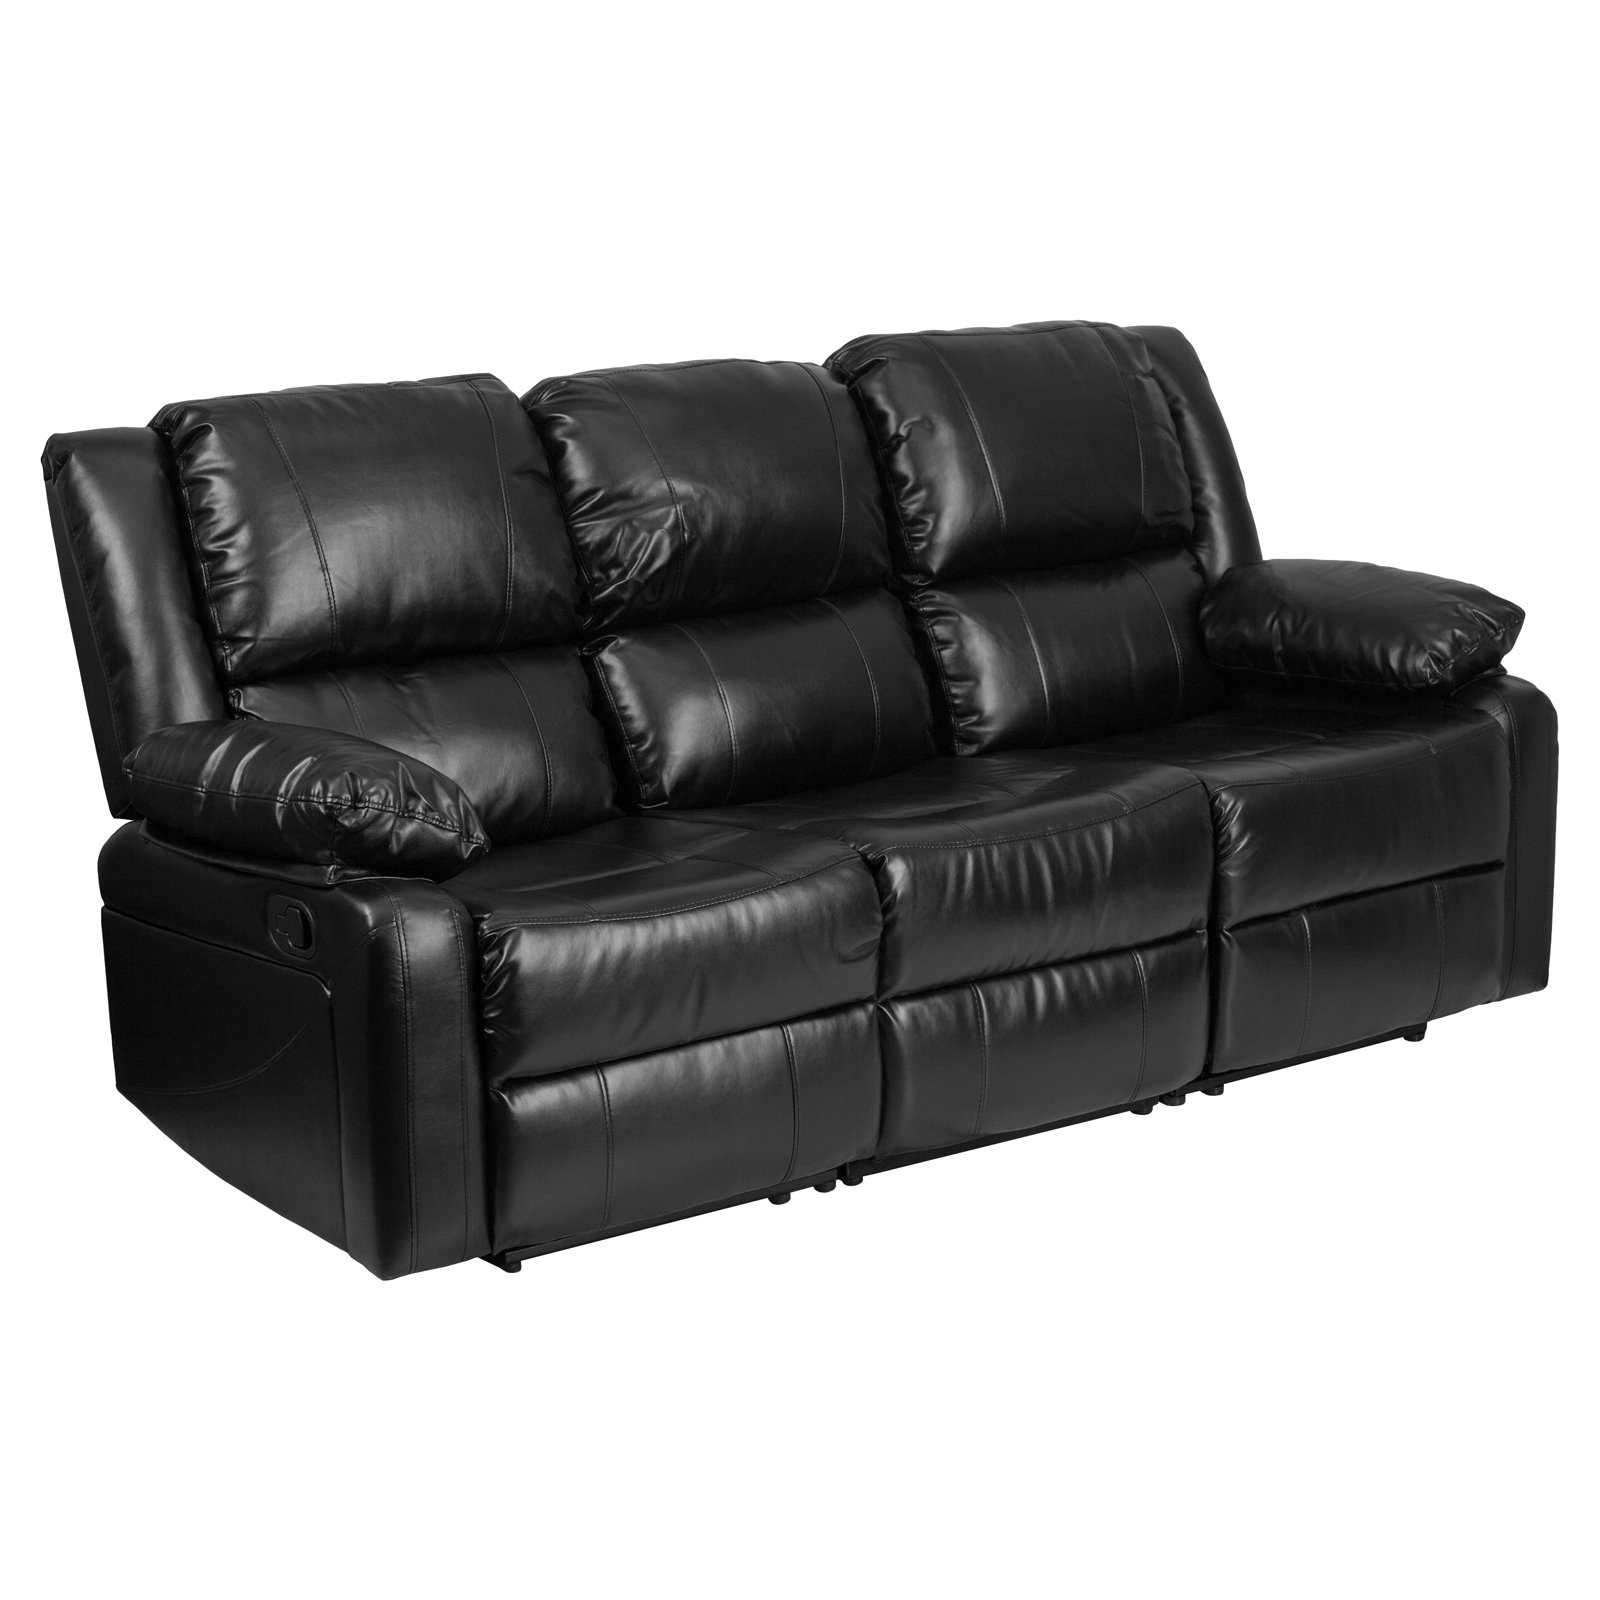 Leather Sofa Recliners ~ Leather Sofa And Recliners